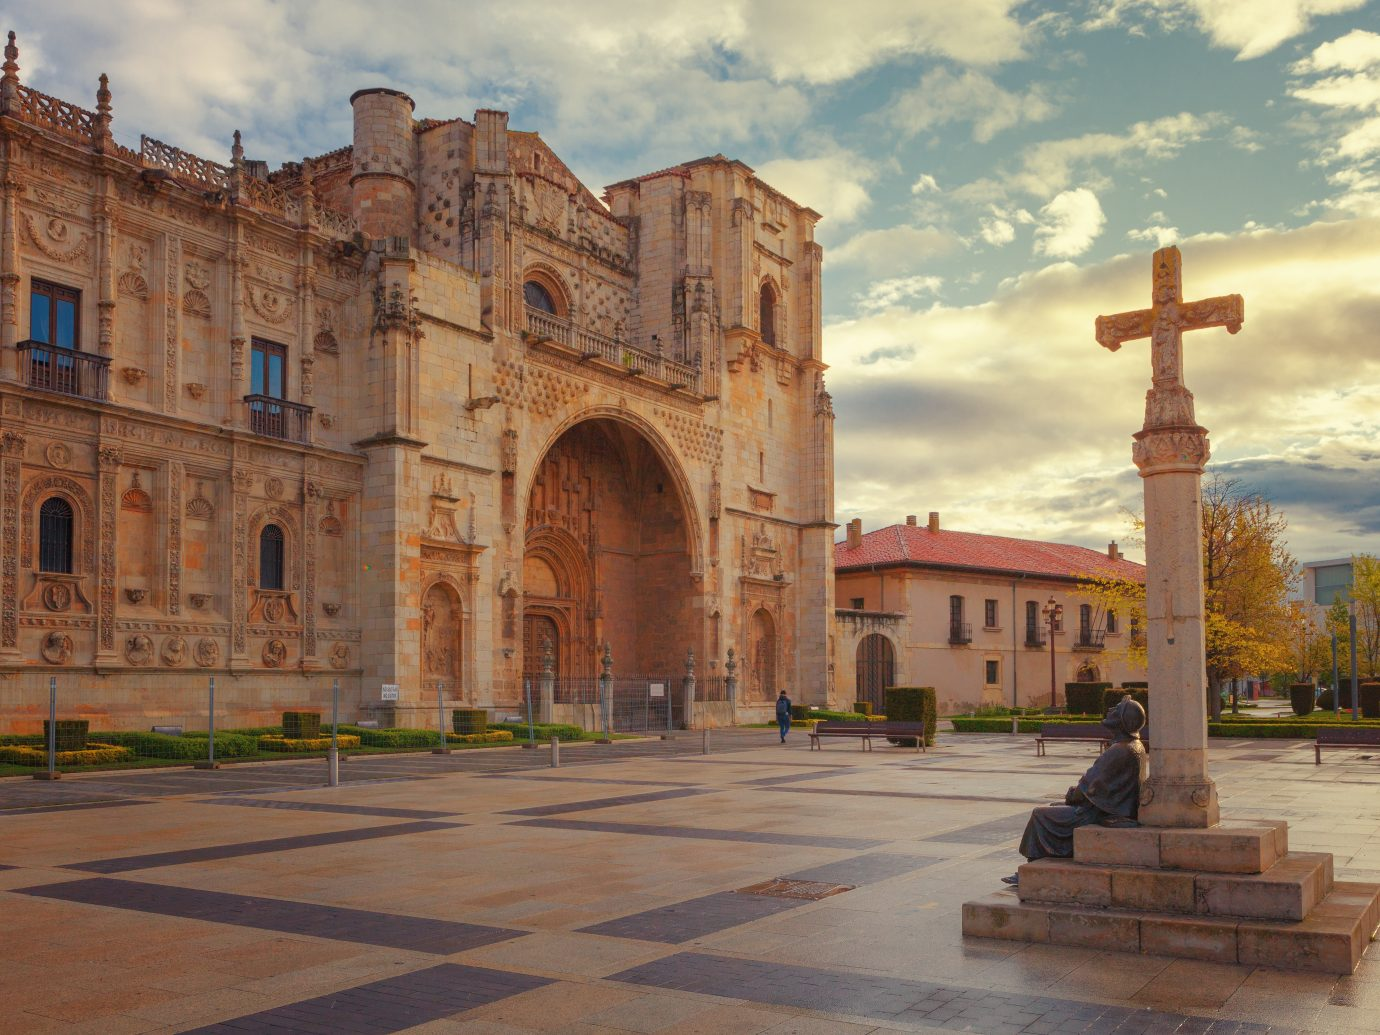 San Marcos, old hospital and convent for pilgrims of the Way of St. James, Leon, Spain